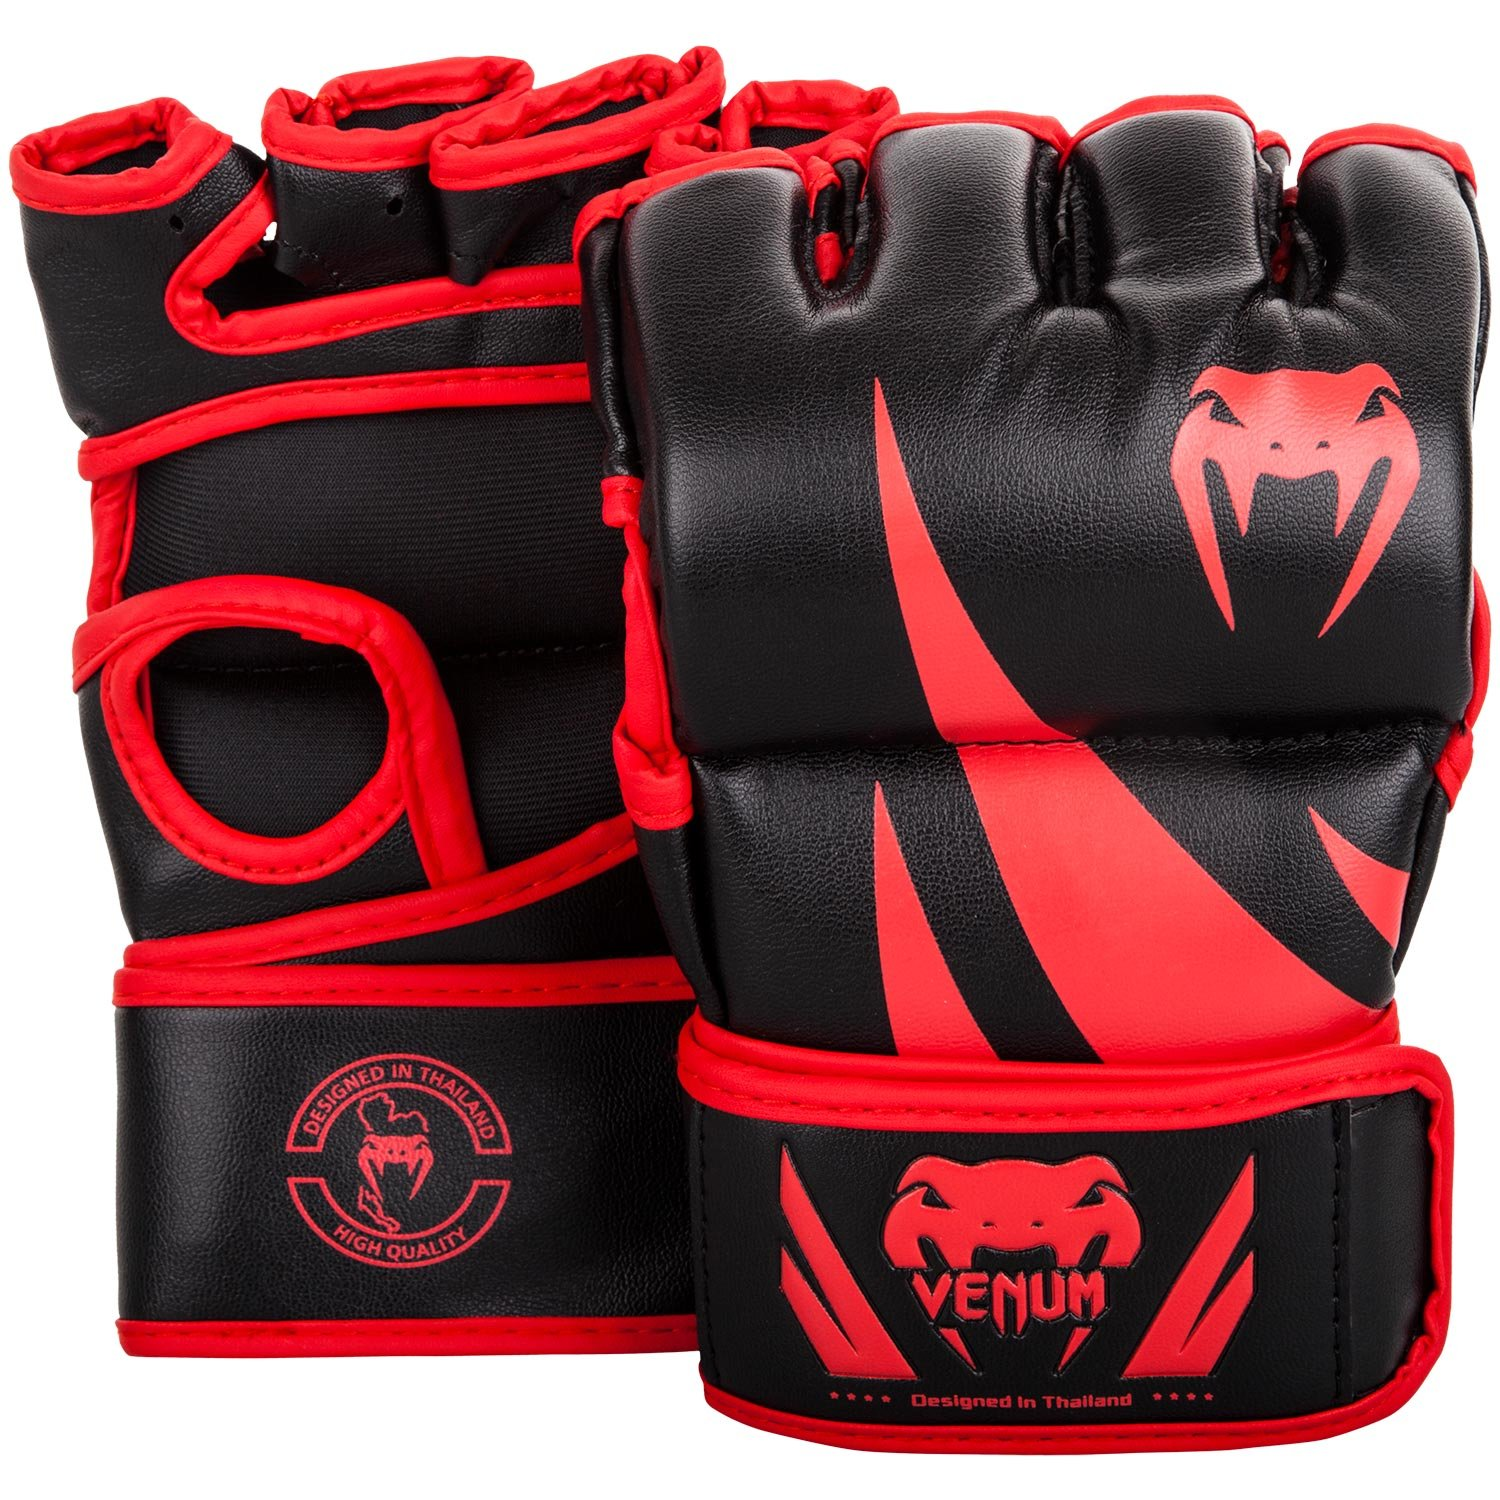 Venum Challenger MMA Gloves - Without Thumb - S, Black/Red, Small by Venum